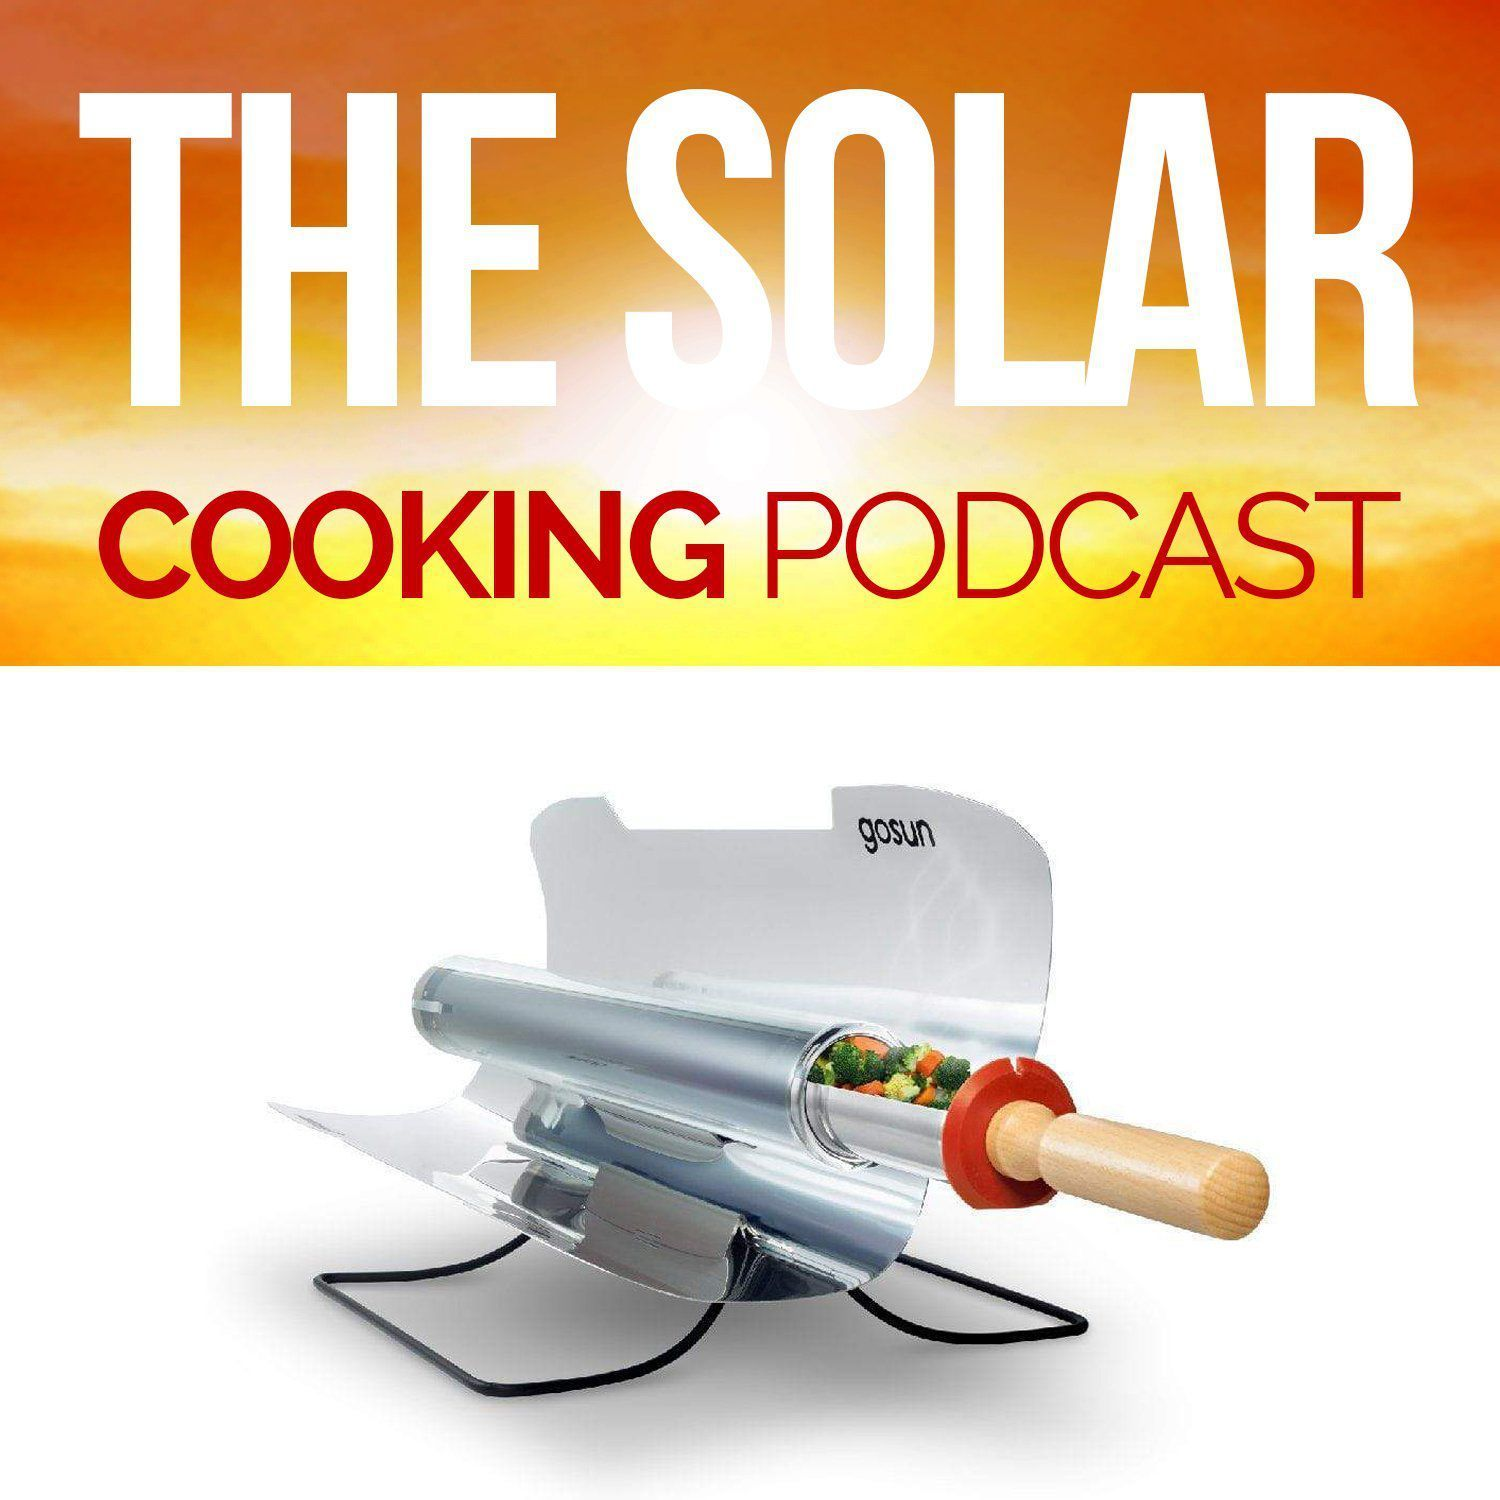 S1 Ep2: Solar Cooking in All Four Seasons